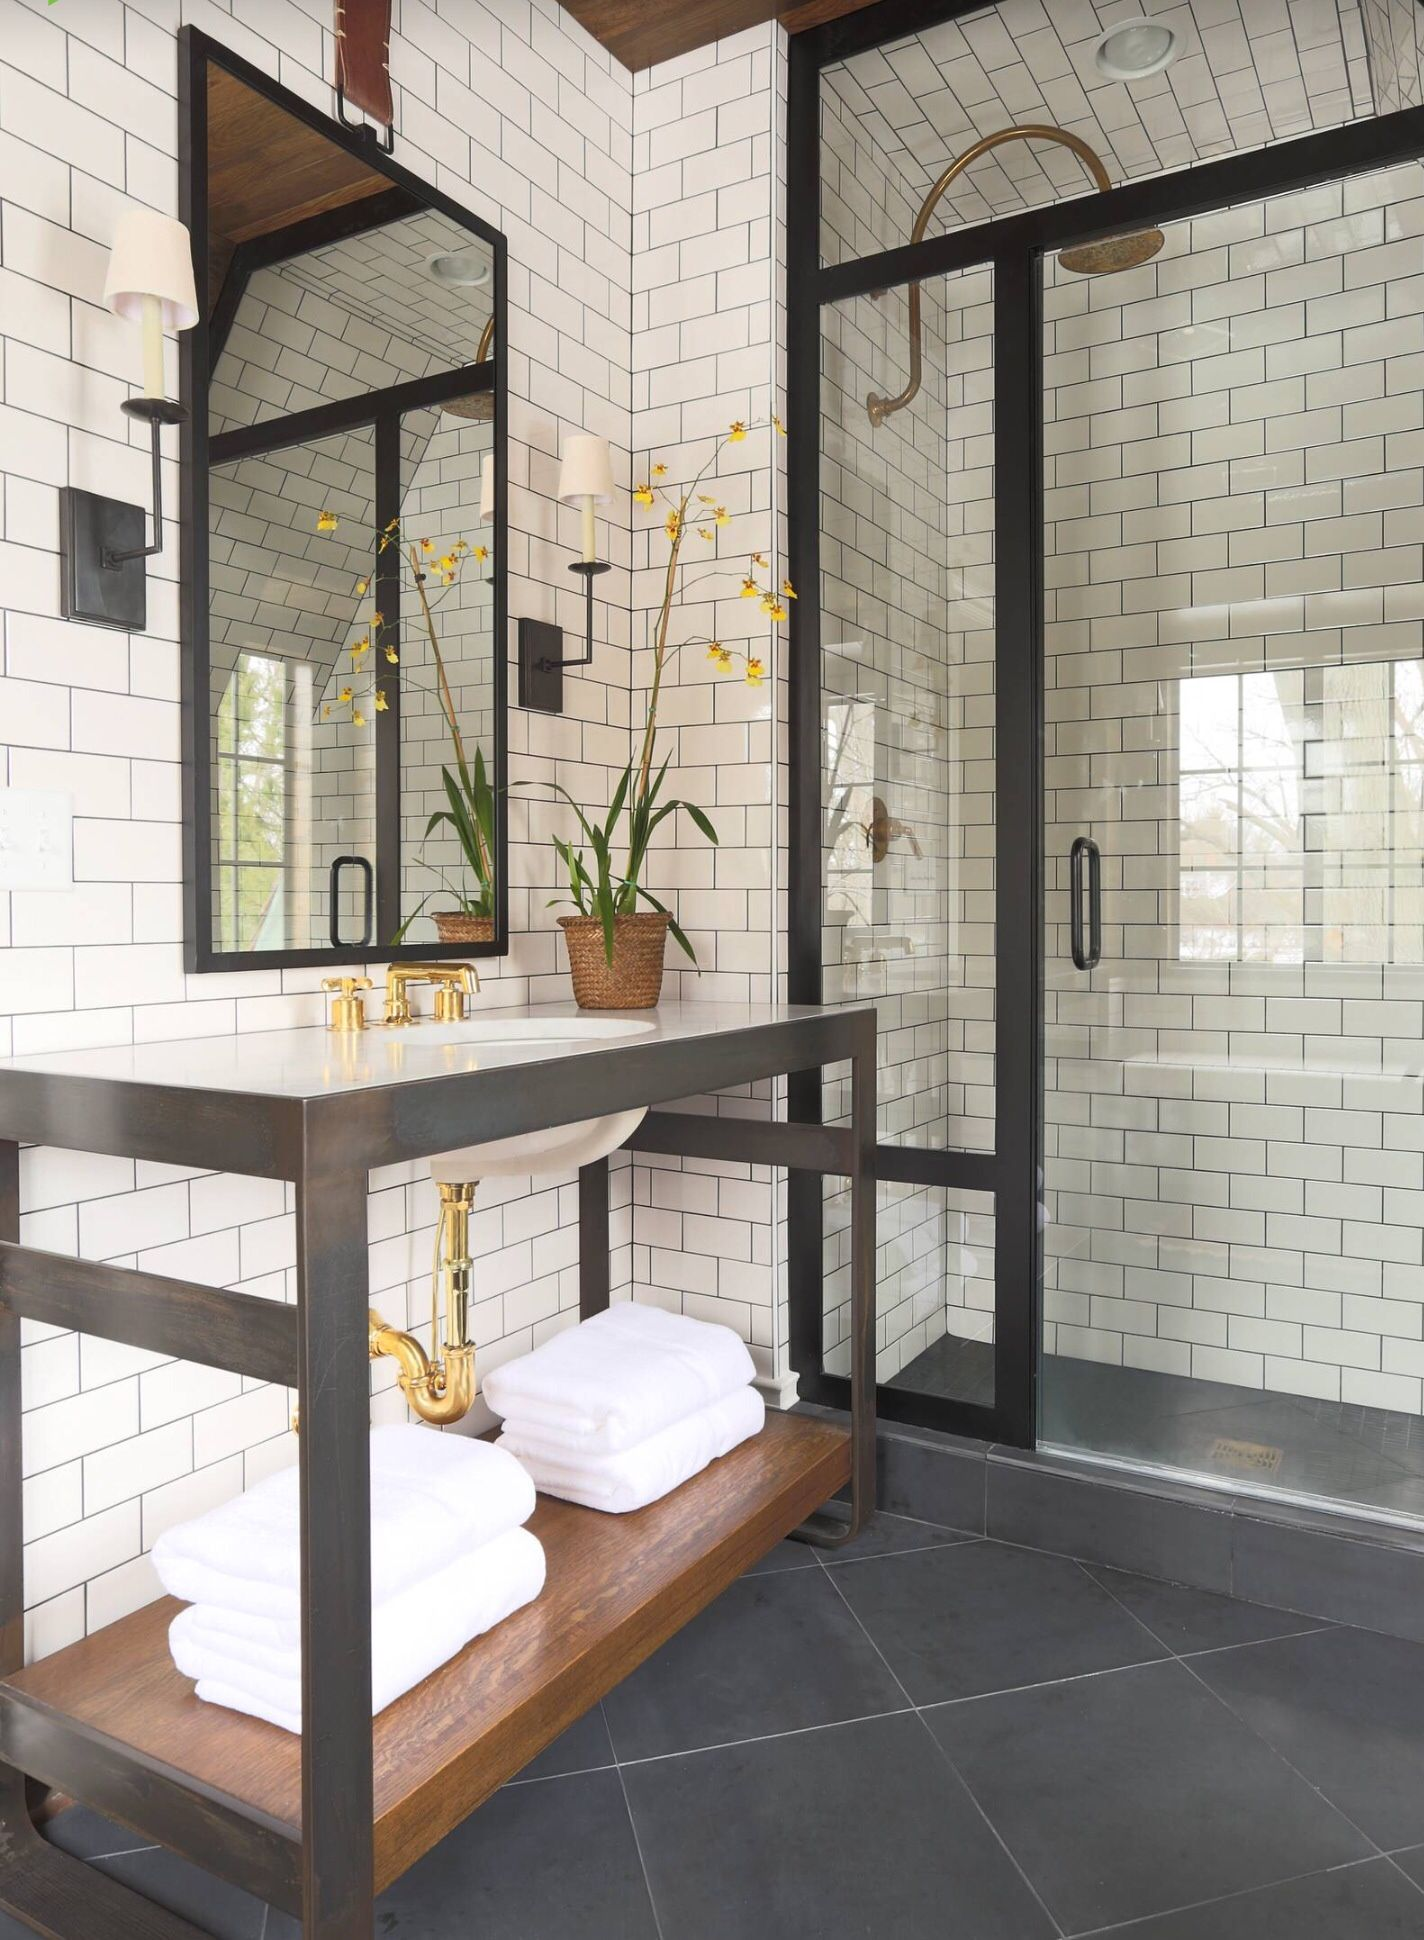 Variations on Laying Subway Tile